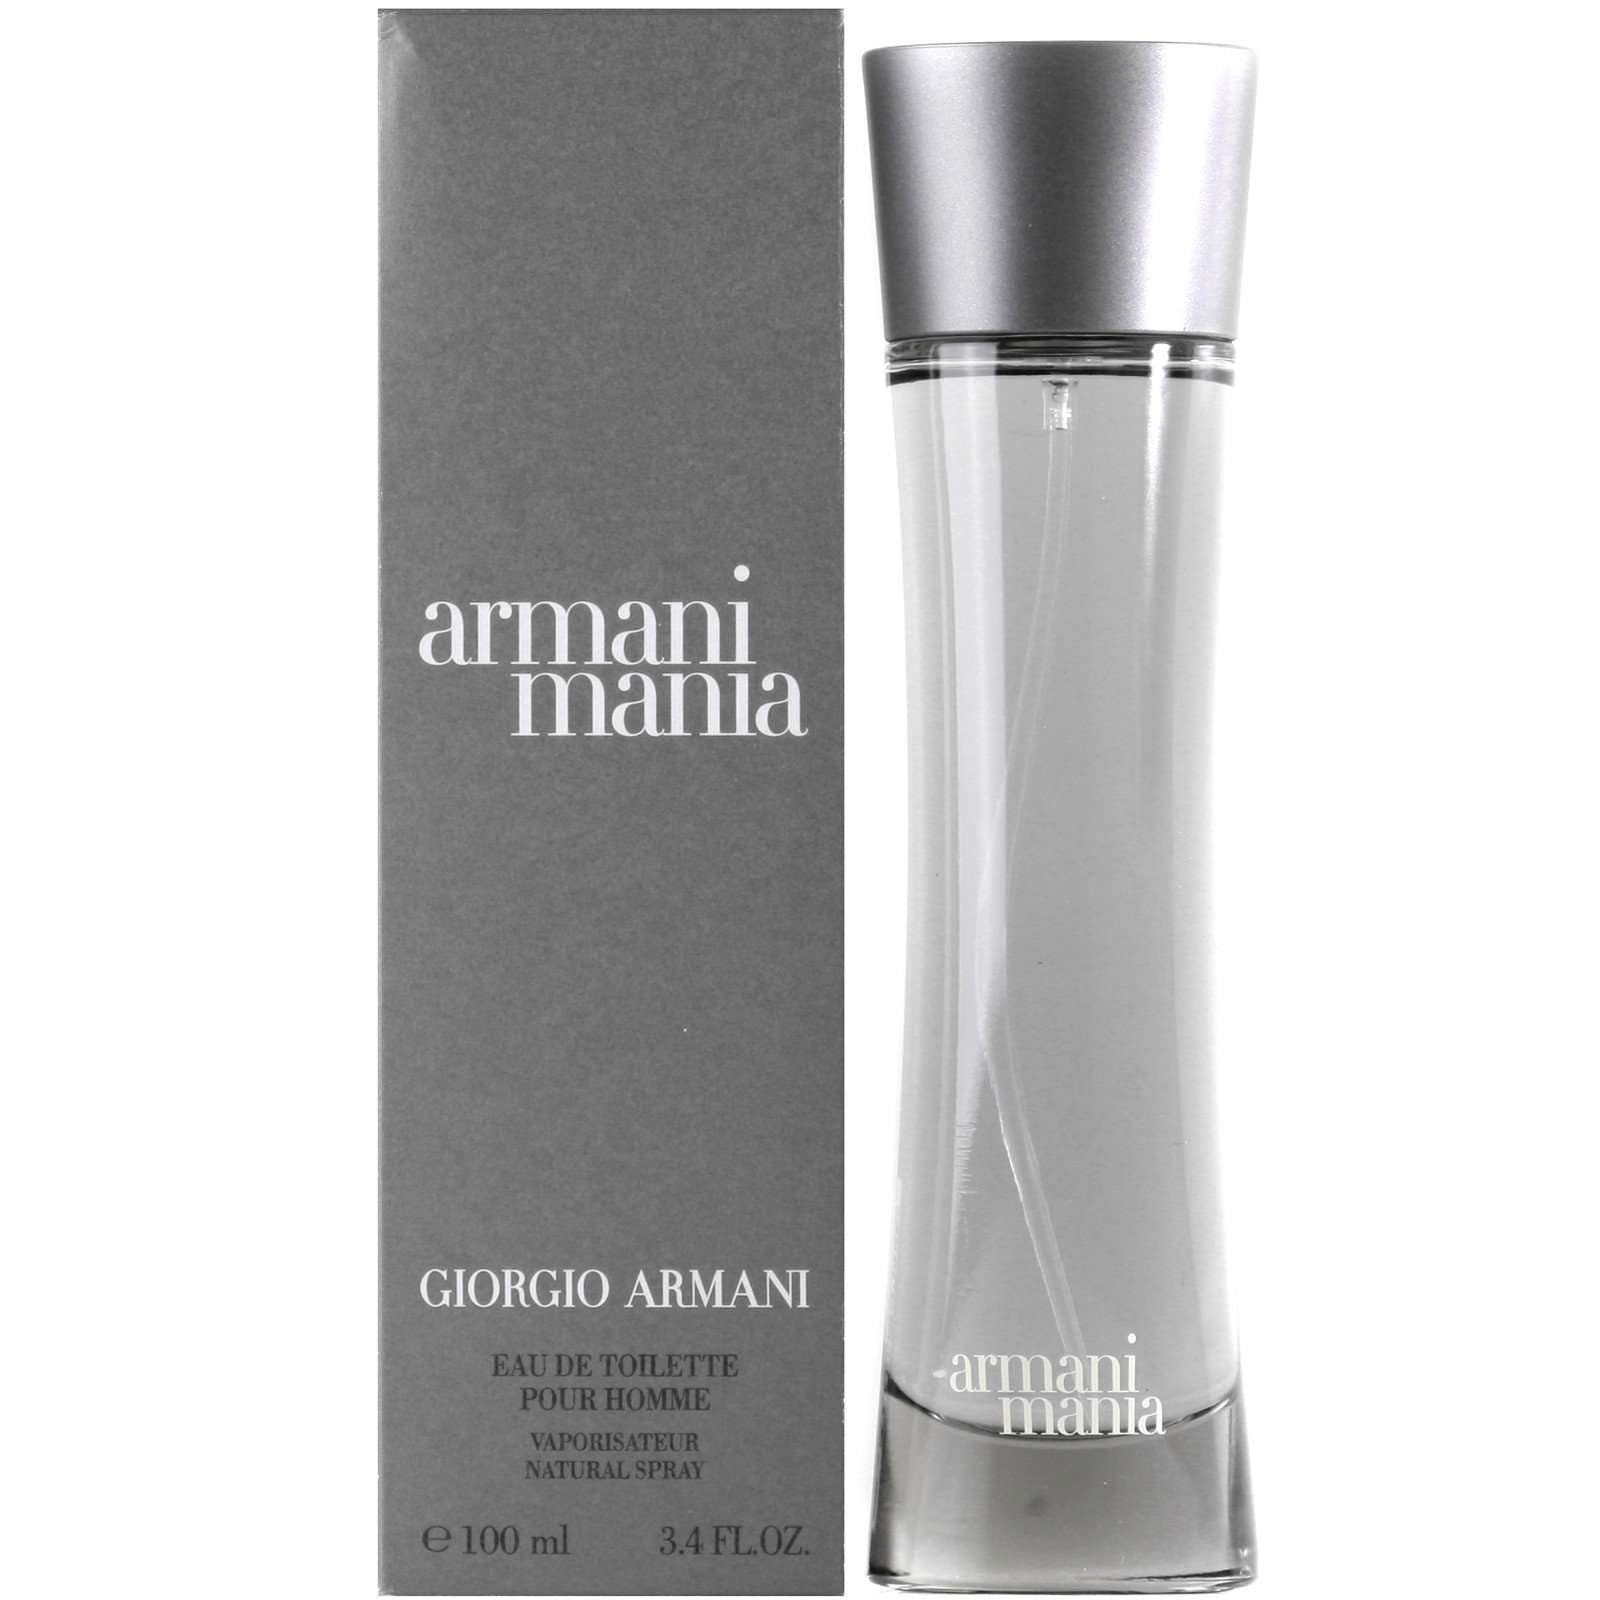 Armani Mania Cologne for Men